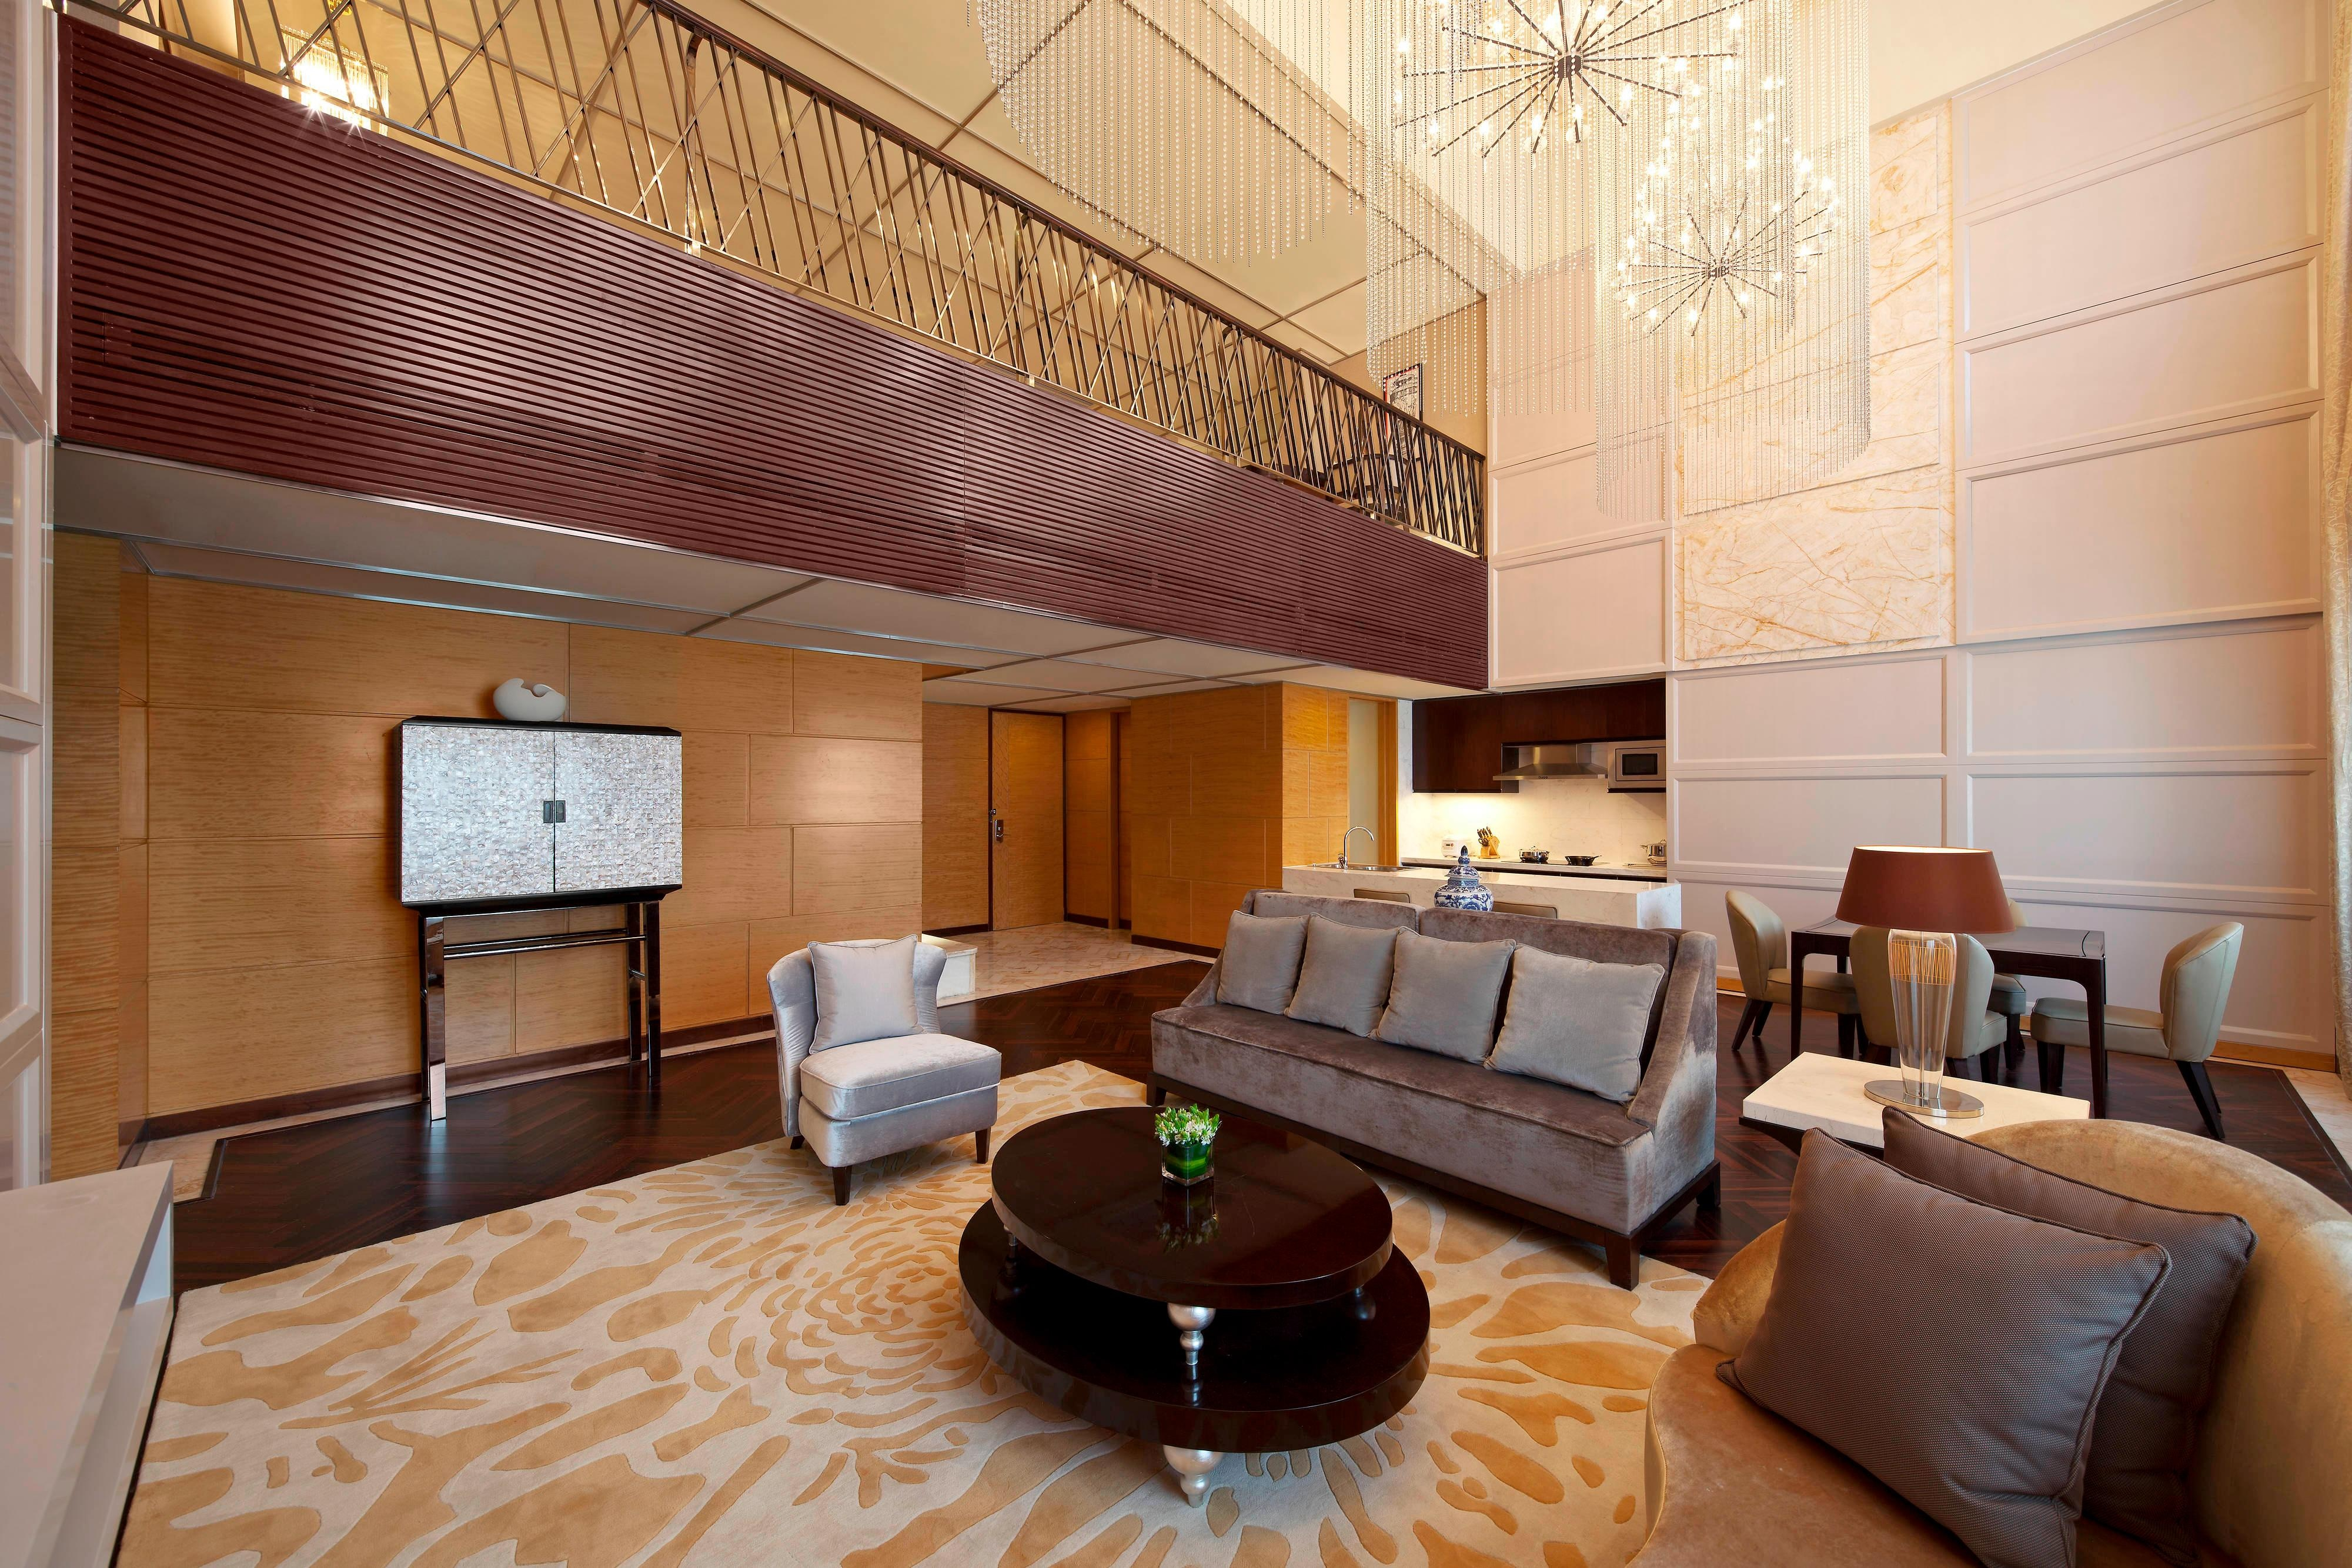 Duplex - Two-Bedroom Suite - Living Room